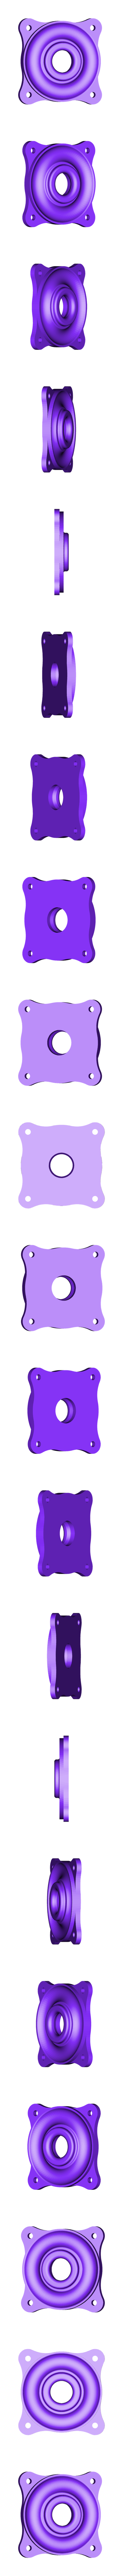 finalbottom.stl Download free STL file Marble Lazy Susan Bearing (No Hardware Required!) • 3D printer template, wildrosebuilds